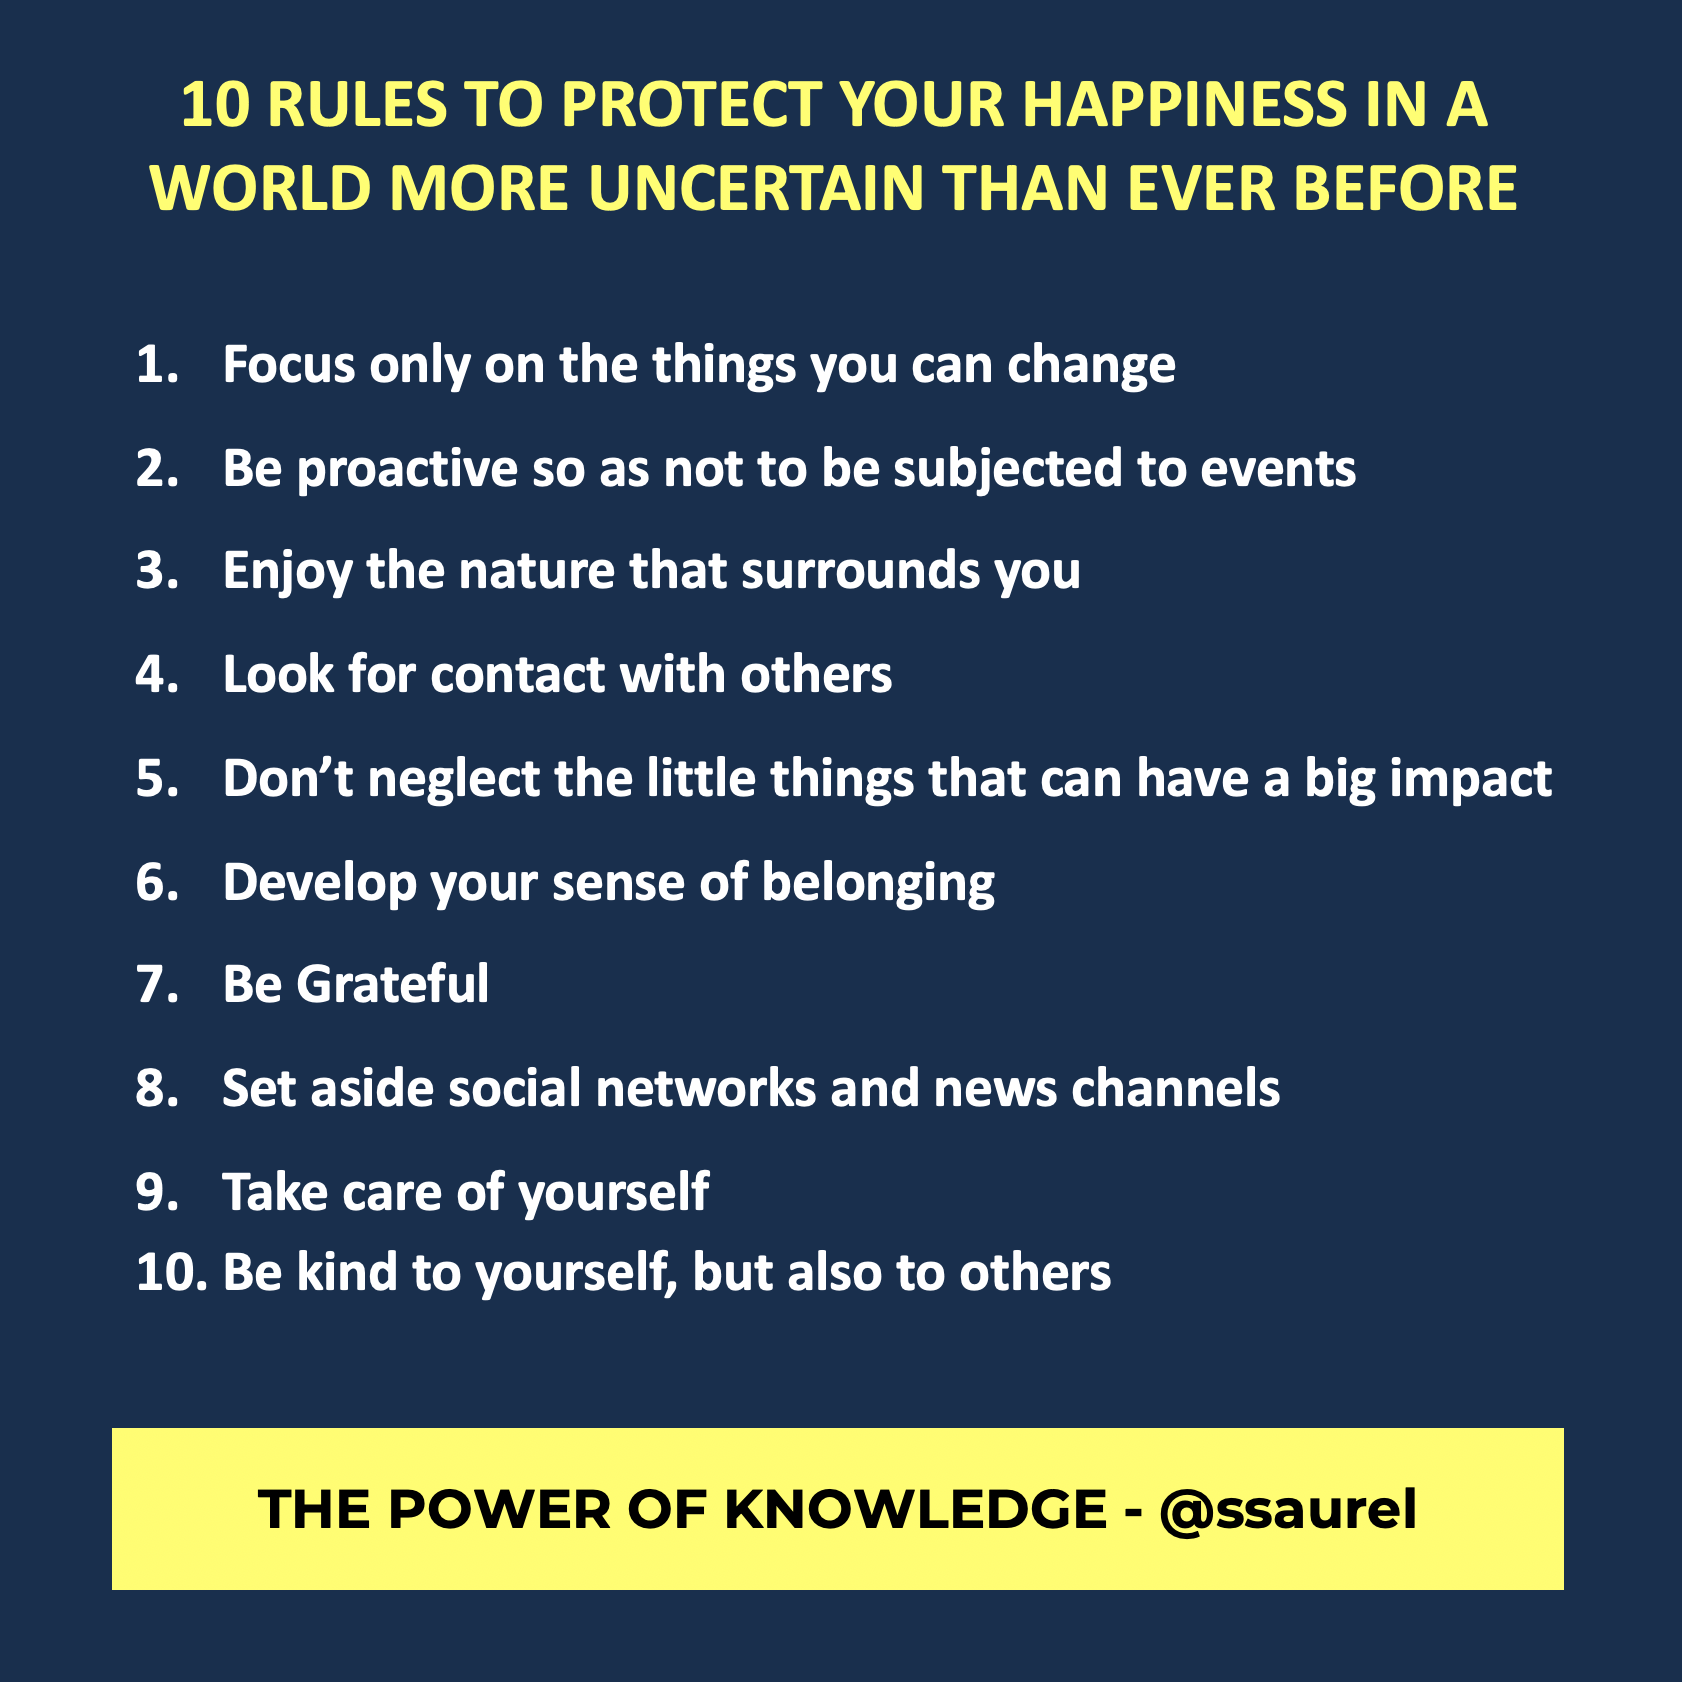 [Image] 10 Rules To Protect Your Happiness in a World More Uncertain Than Ever Before